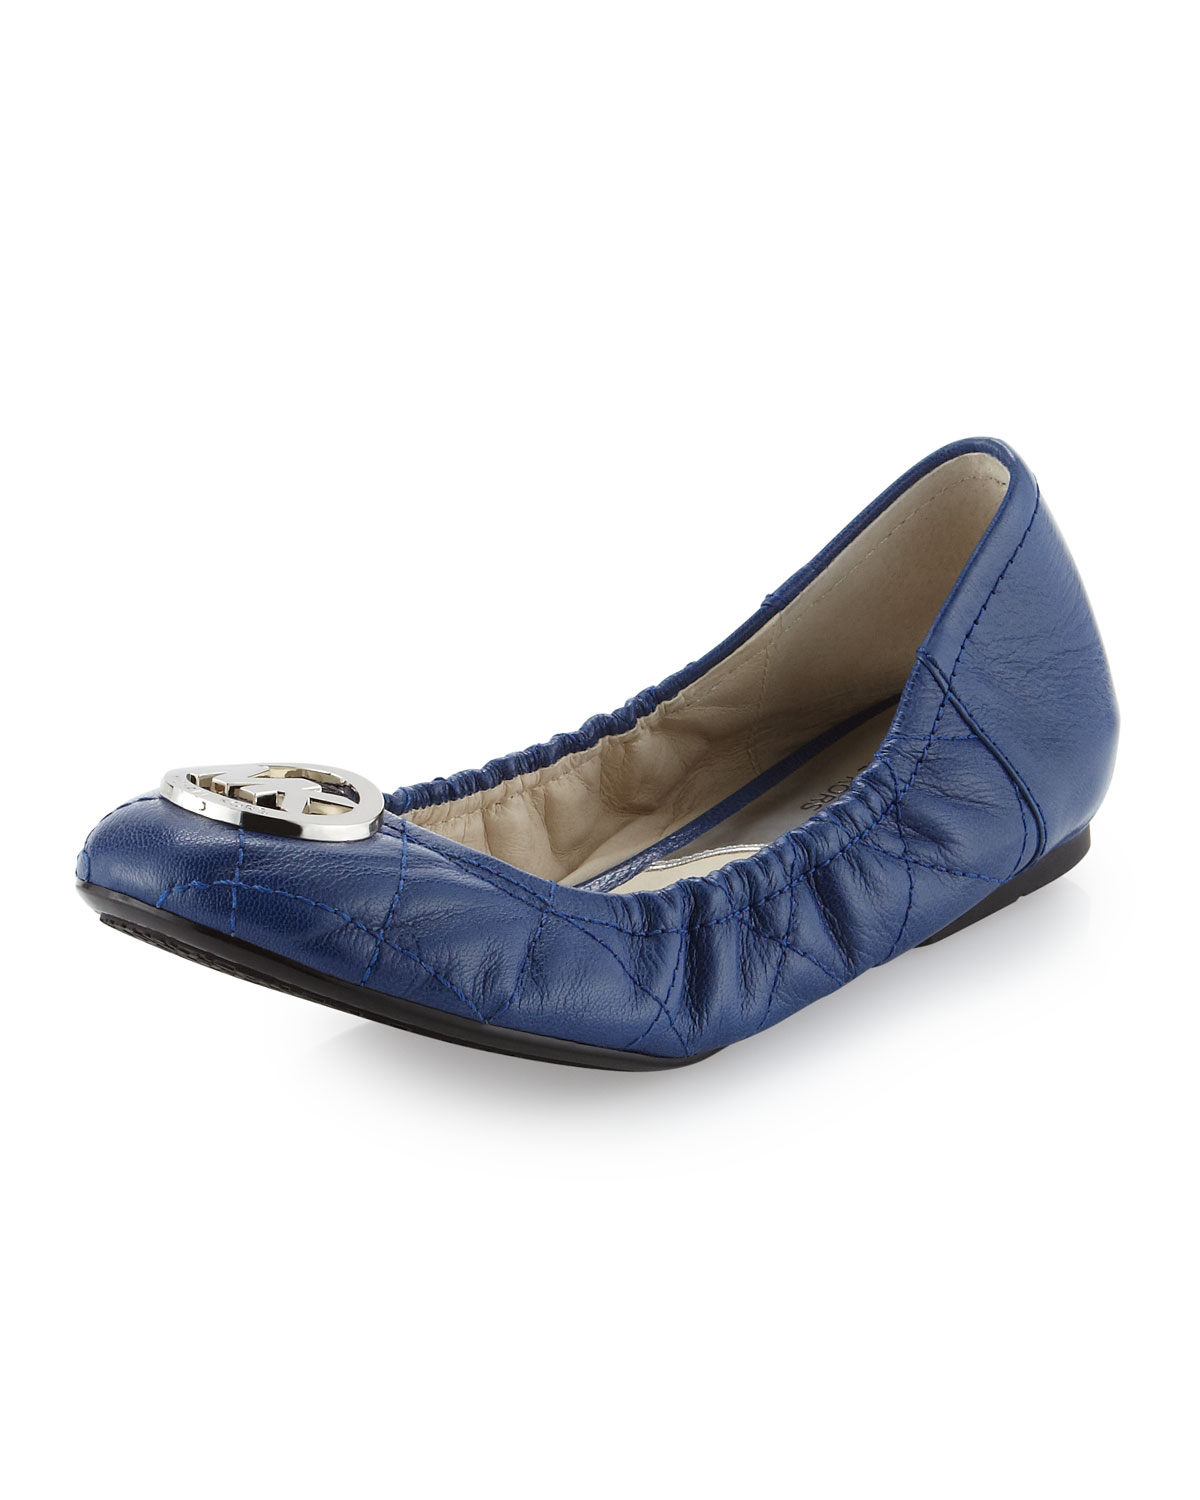 michael michael kors fulton quilted ballerina flat in blue sapphire lyst. Black Bedroom Furniture Sets. Home Design Ideas